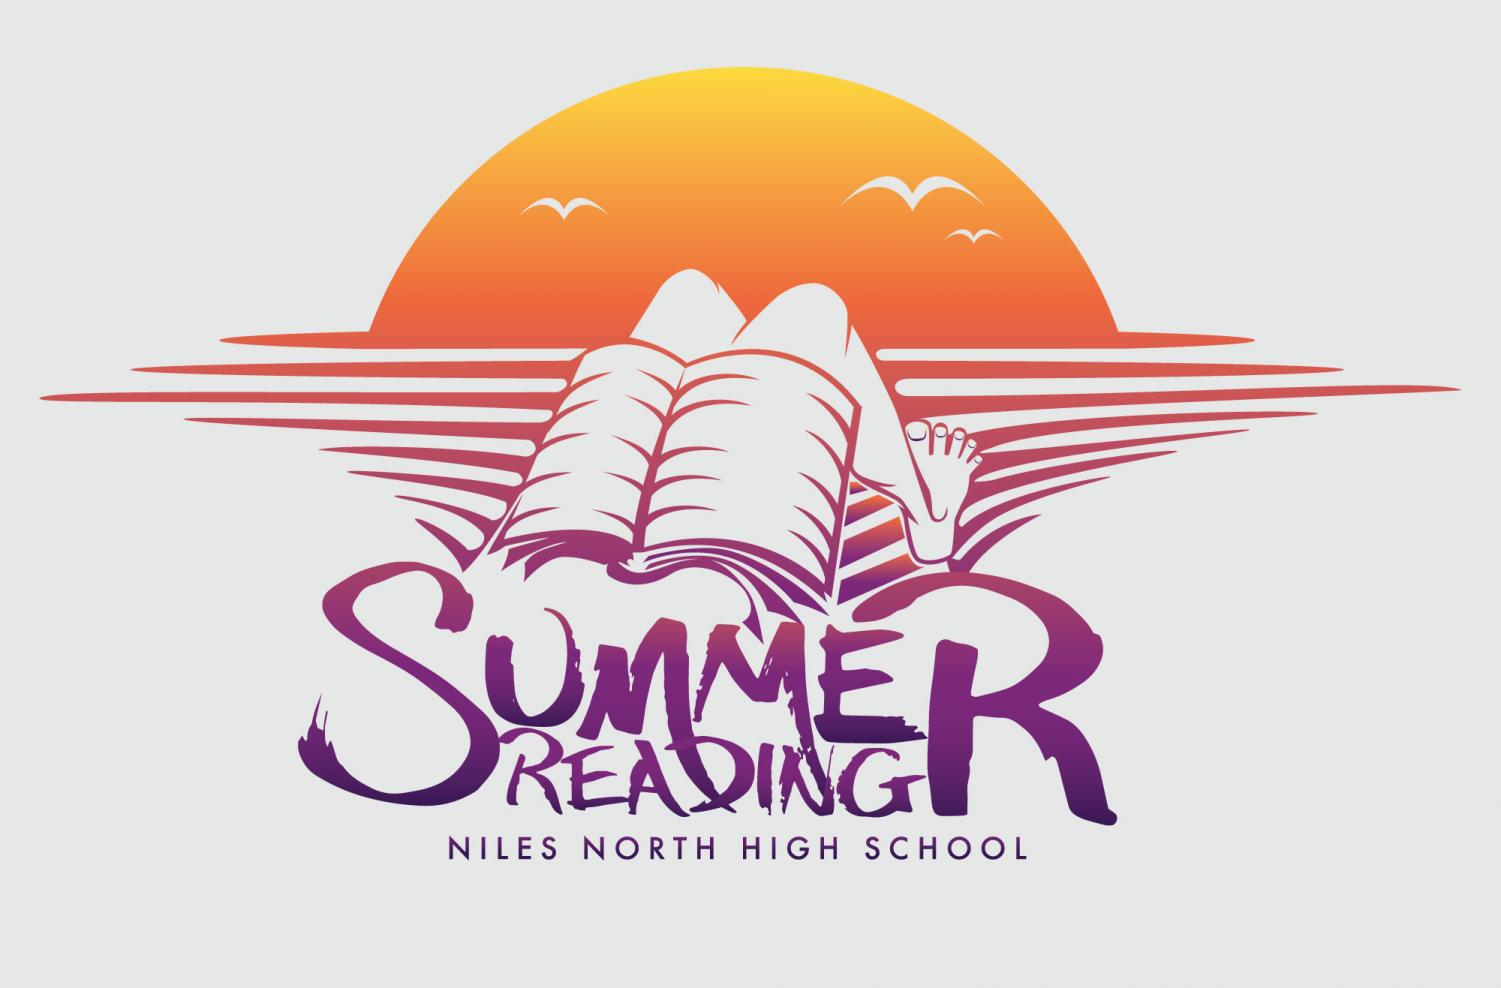 Summer reading is here, get your free book!